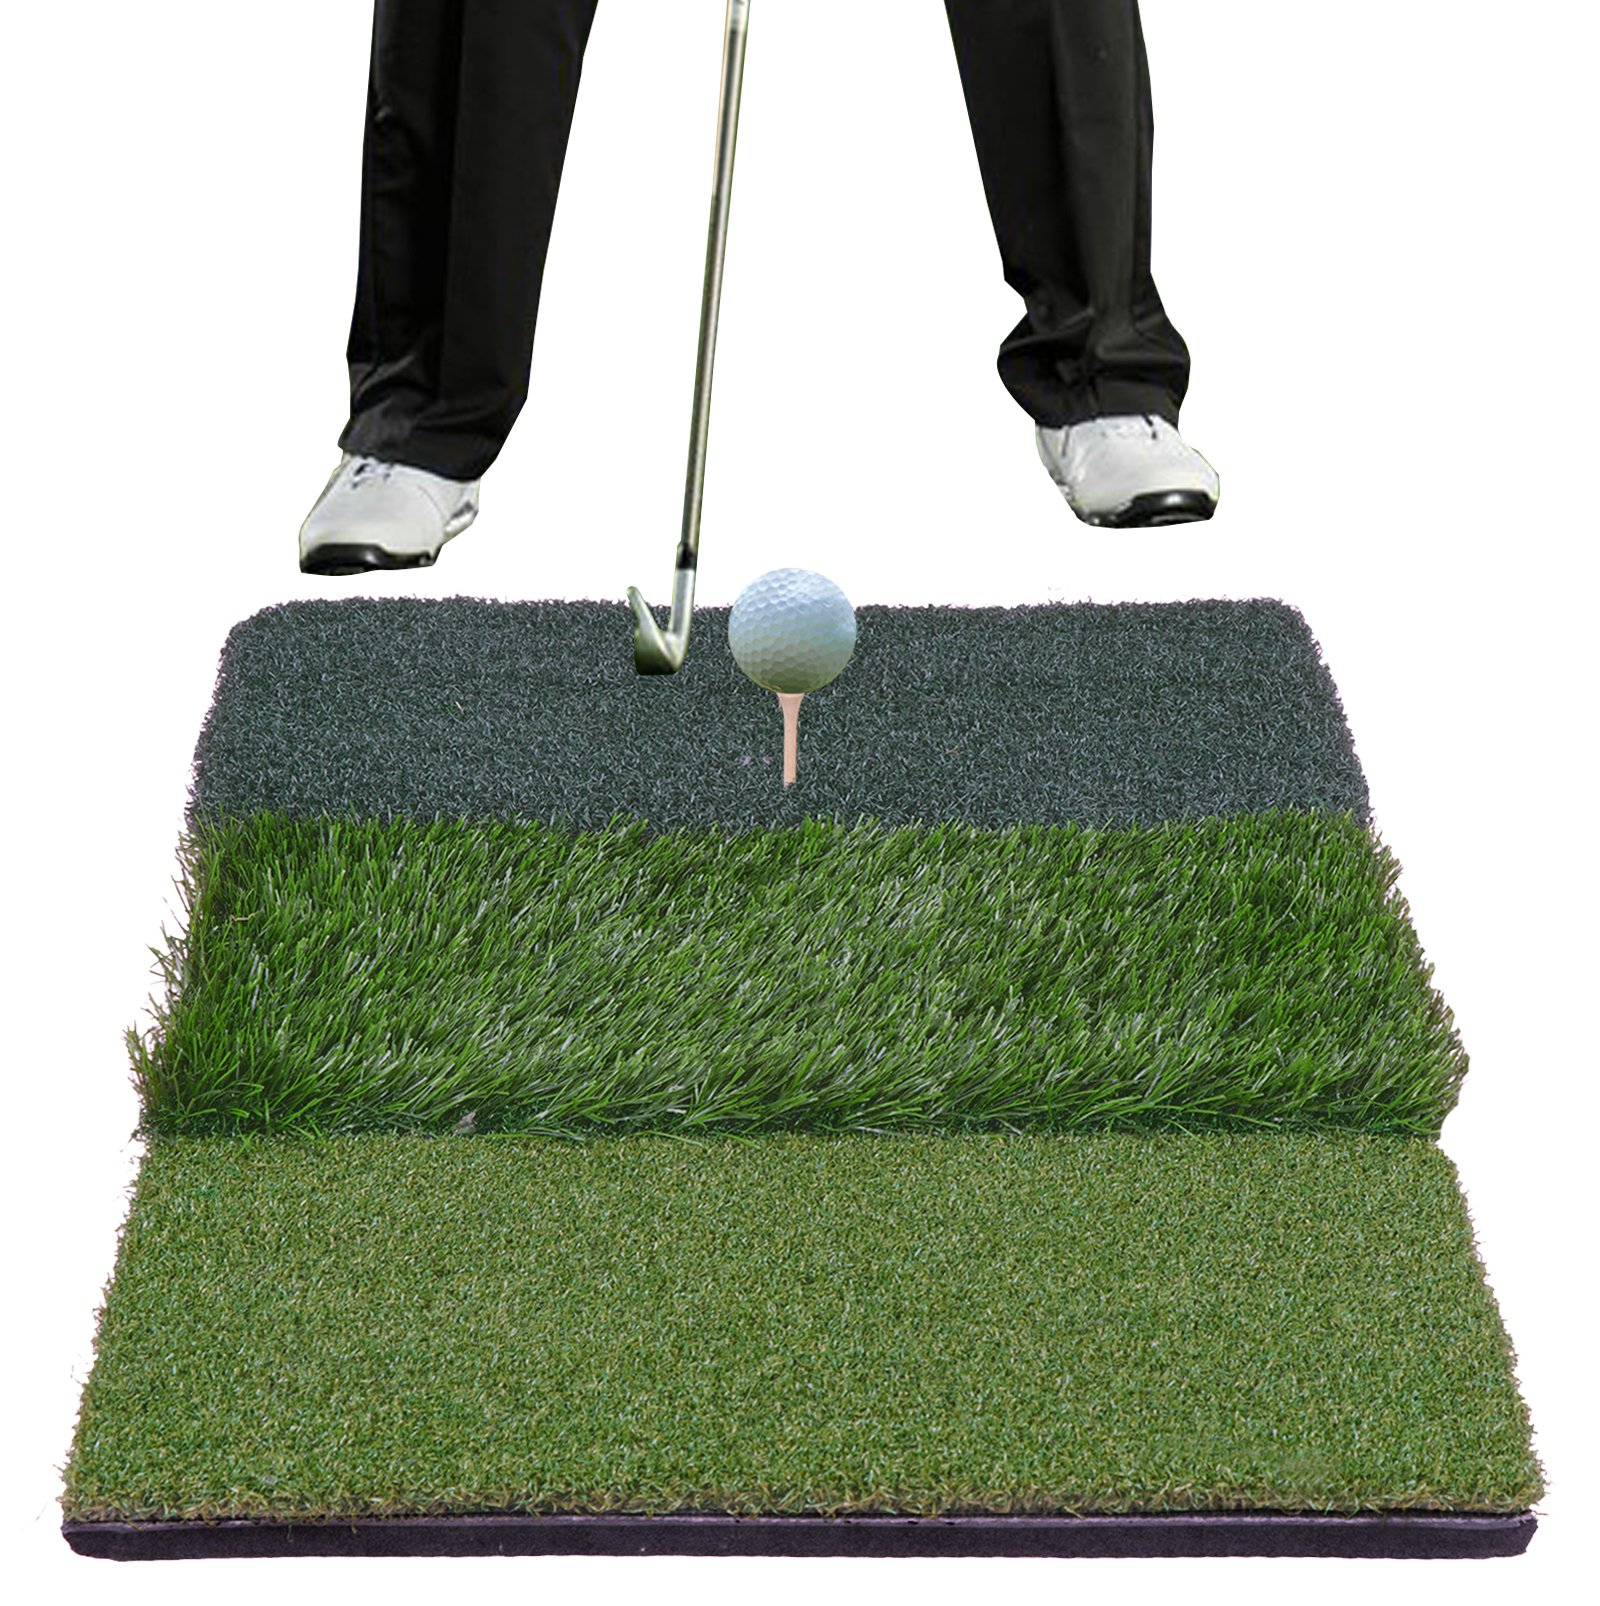 HOMGARDEN Golf Hitting Mat (25'' x 16'') Three Turf Types with Rubber Tee for Driving, Chipping and Putting Golf Practice and Training